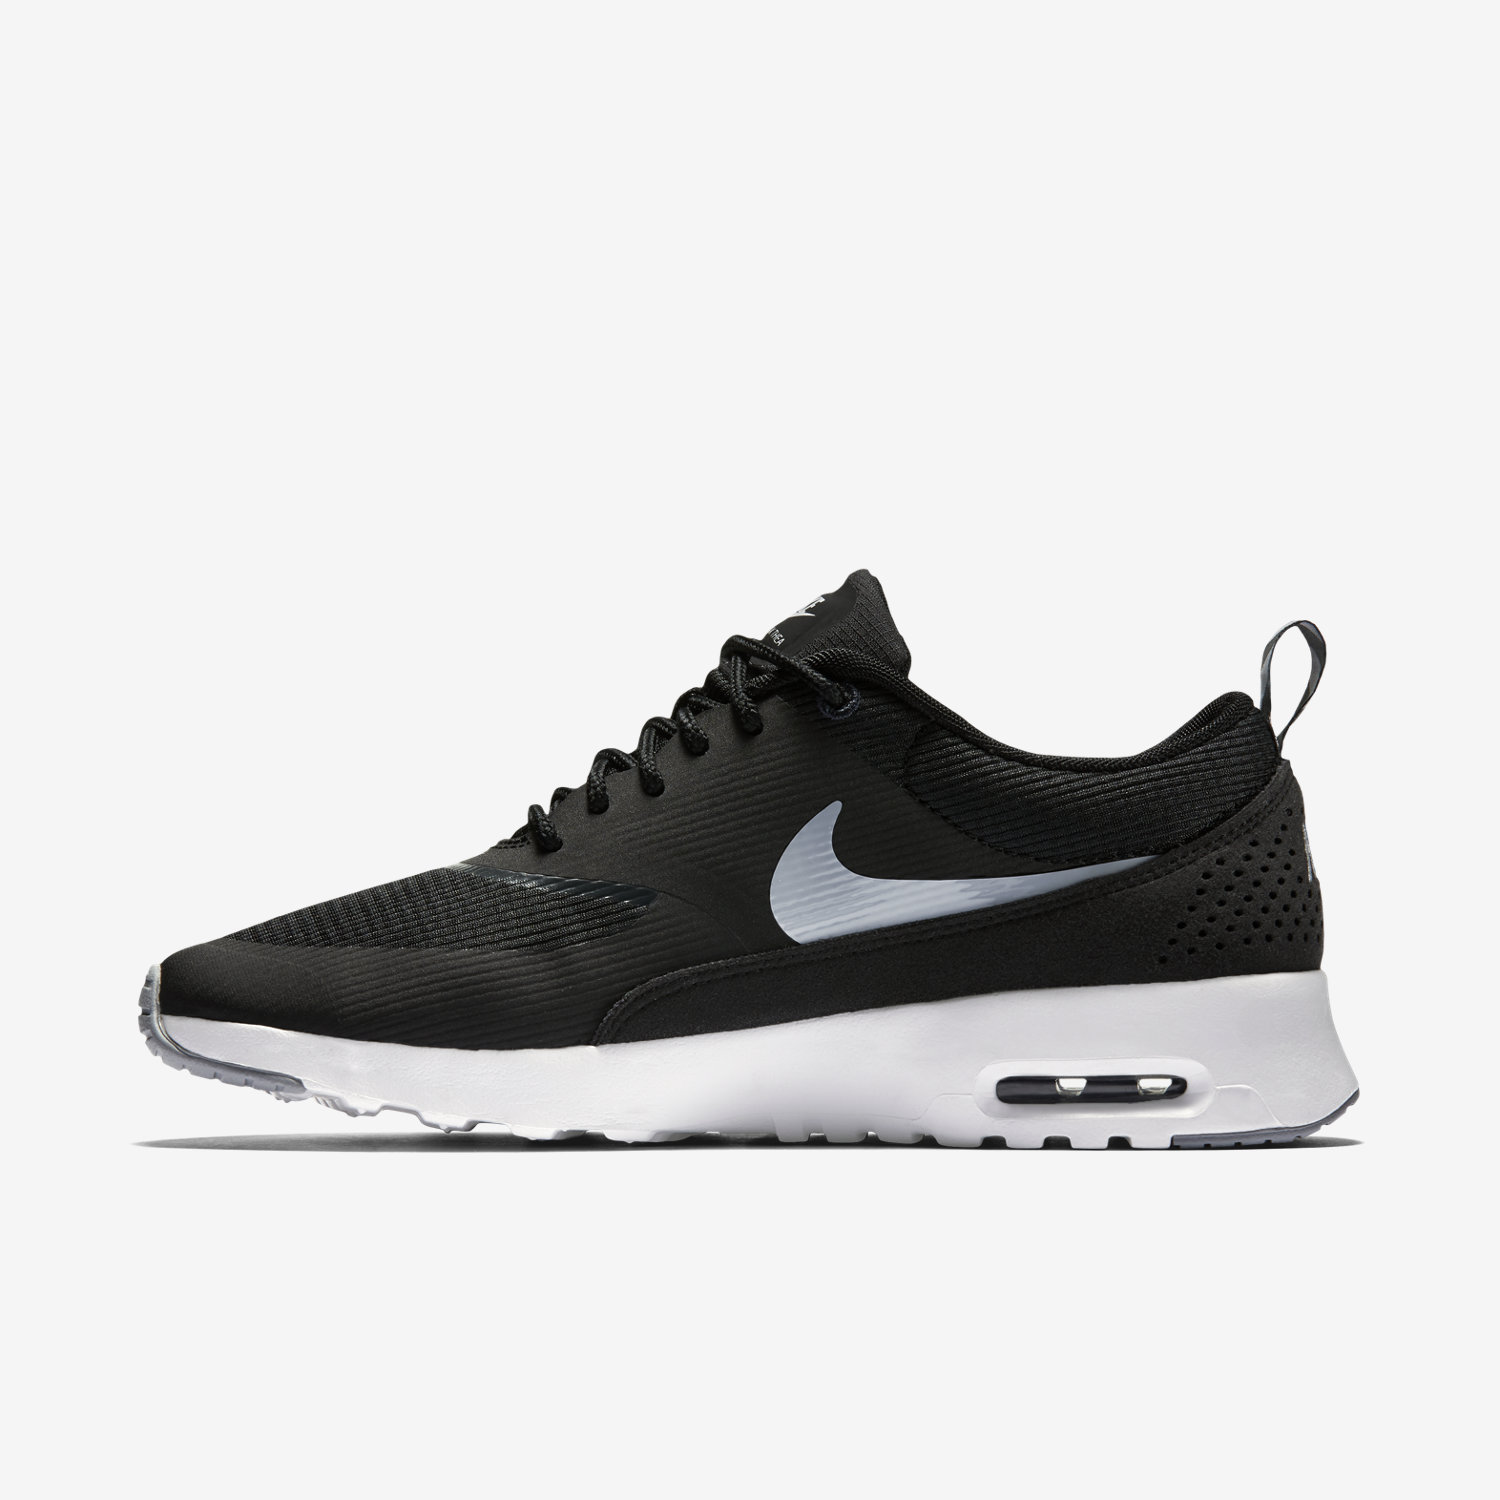 sneakers nike air max thea. Black Bedroom Furniture Sets. Home Design Ideas